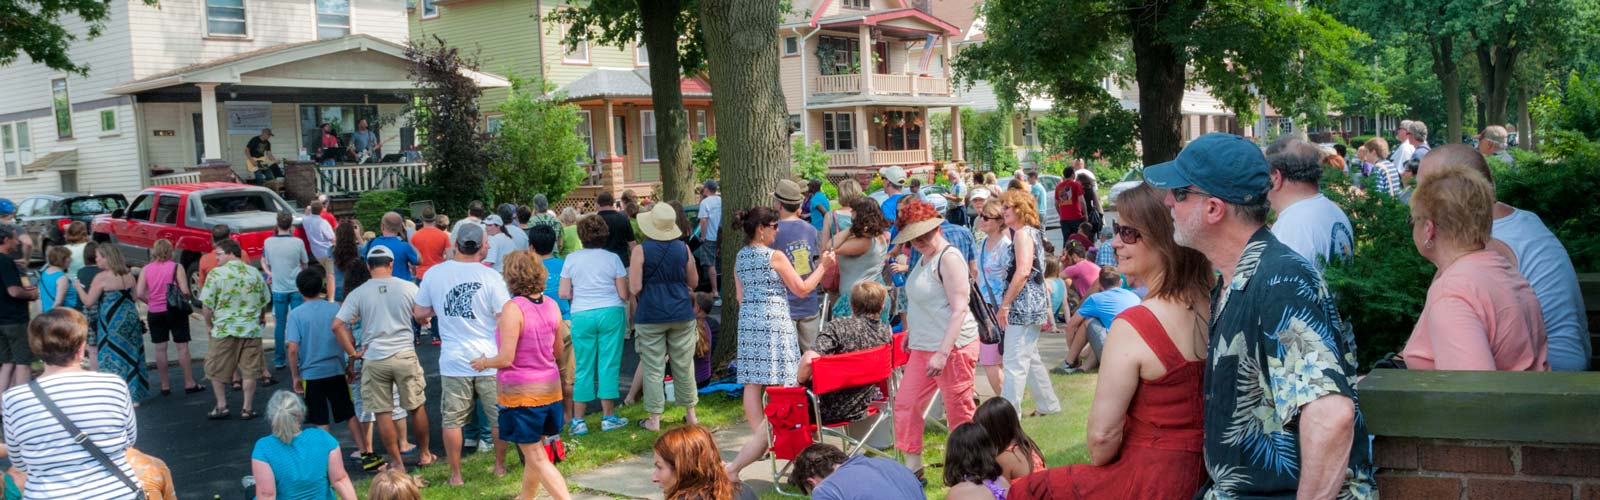 Larchmere PorchFest <span class='image-credits'>Best</span>